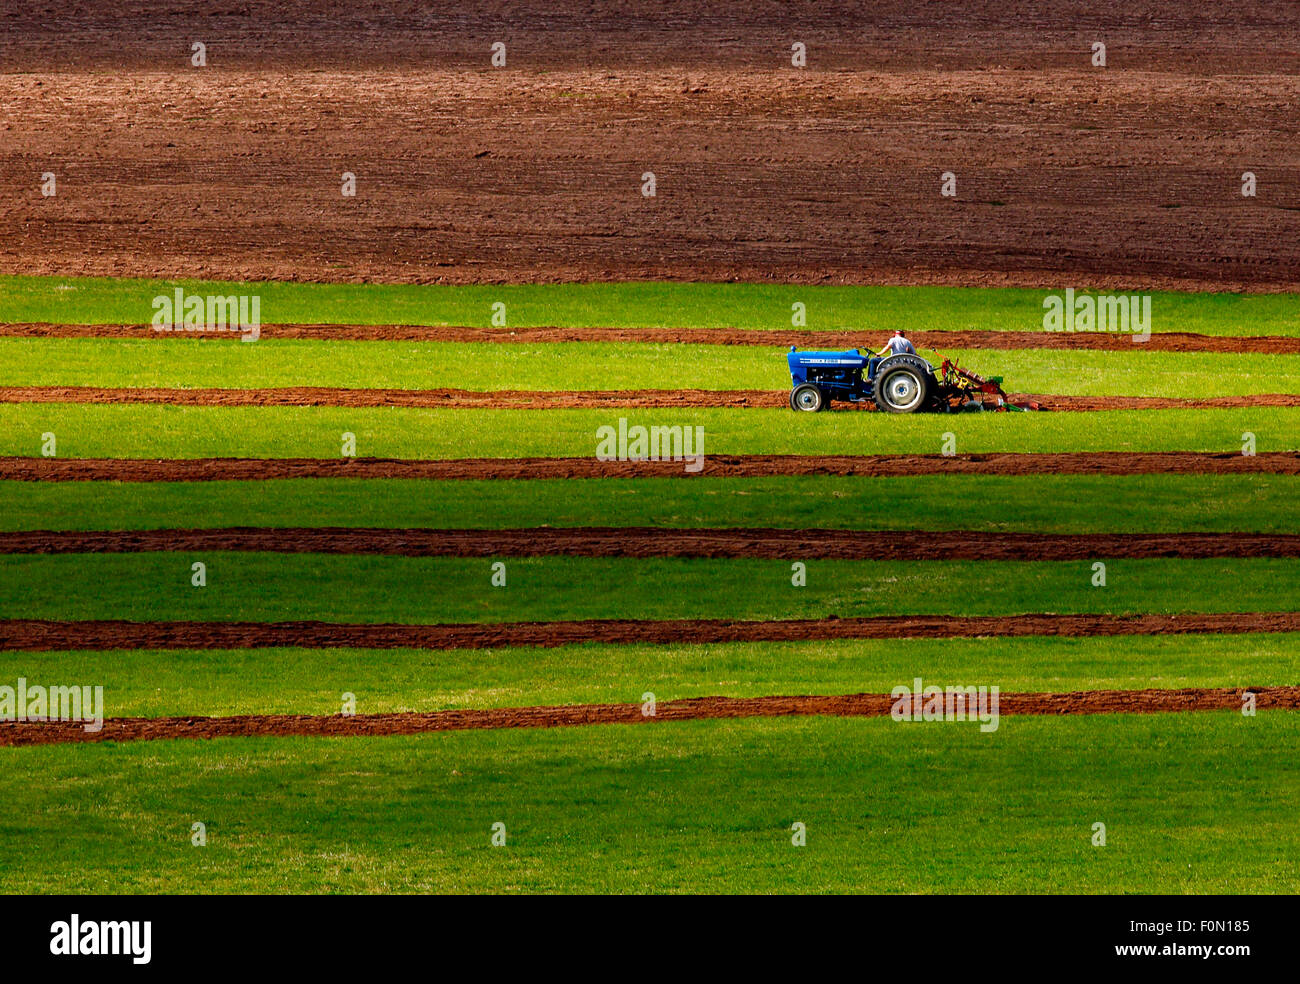 A competitor in the tractor plowing class at the 2014 New Brunswick plowing match is spotlighted by the sun. - Stock Image